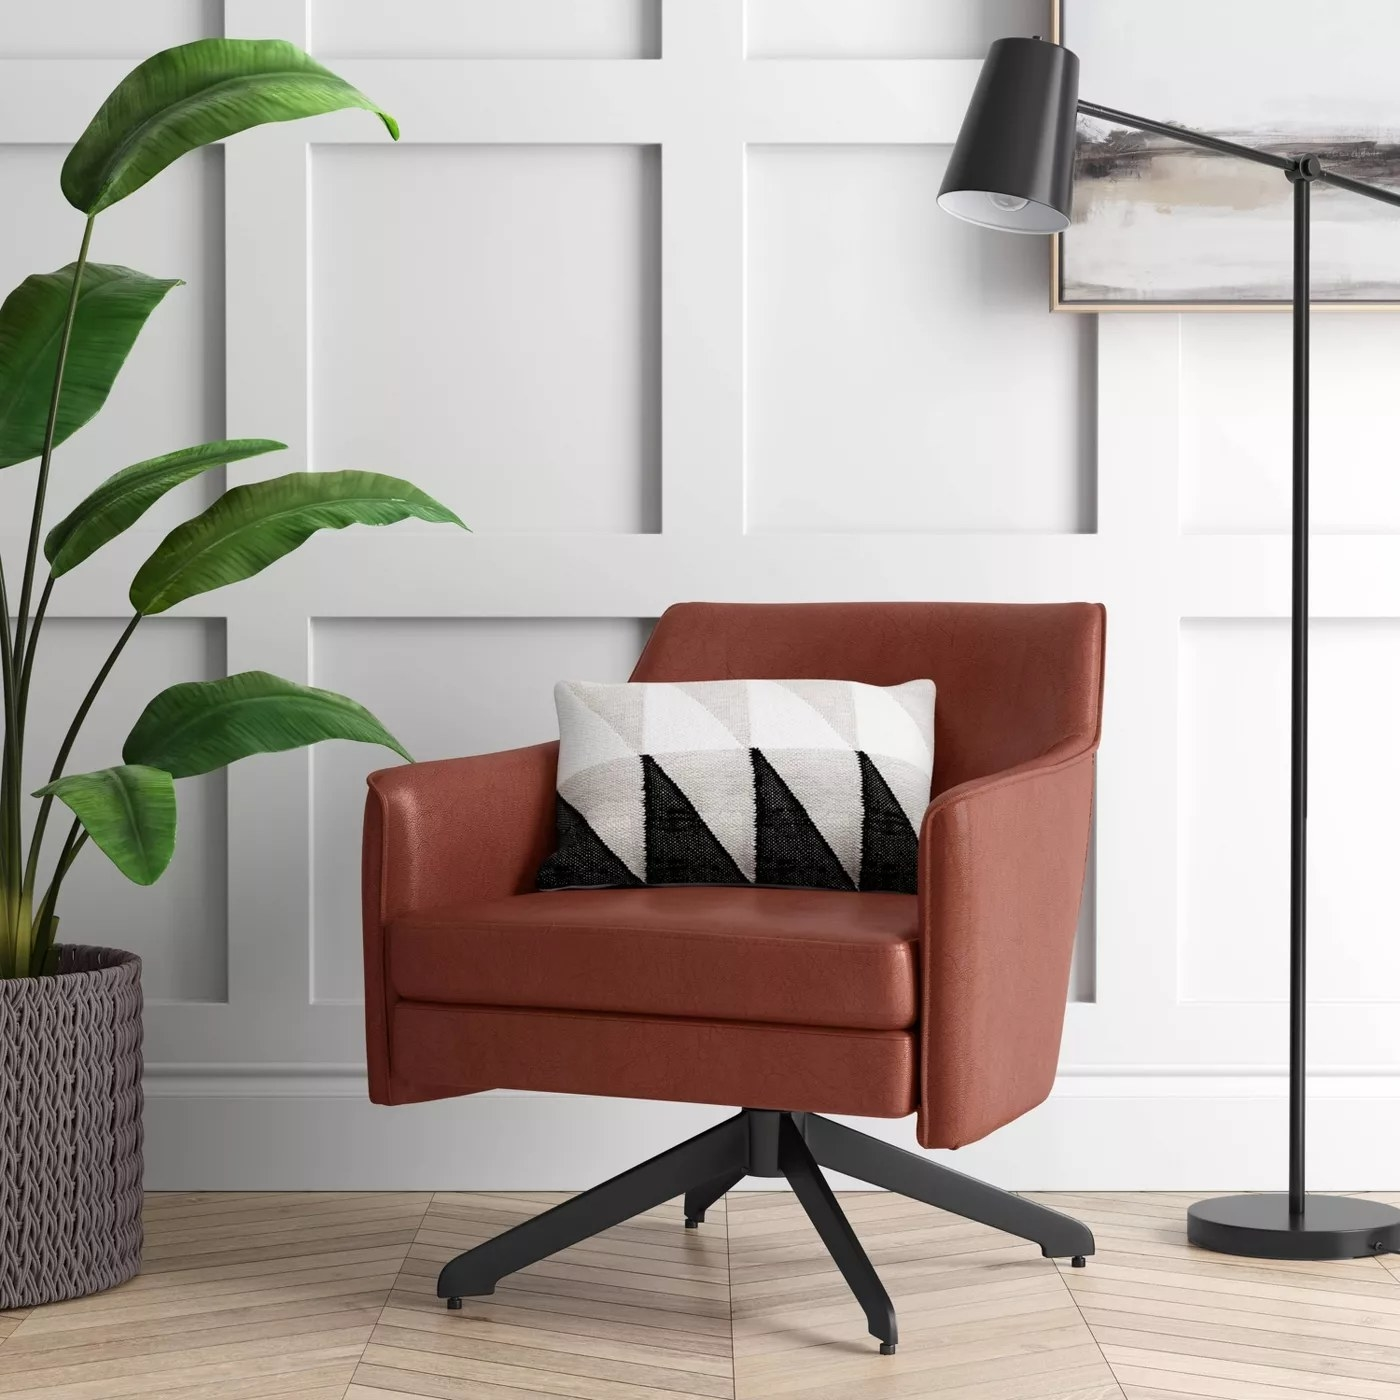 The brown chair with a black swivel base in a living room